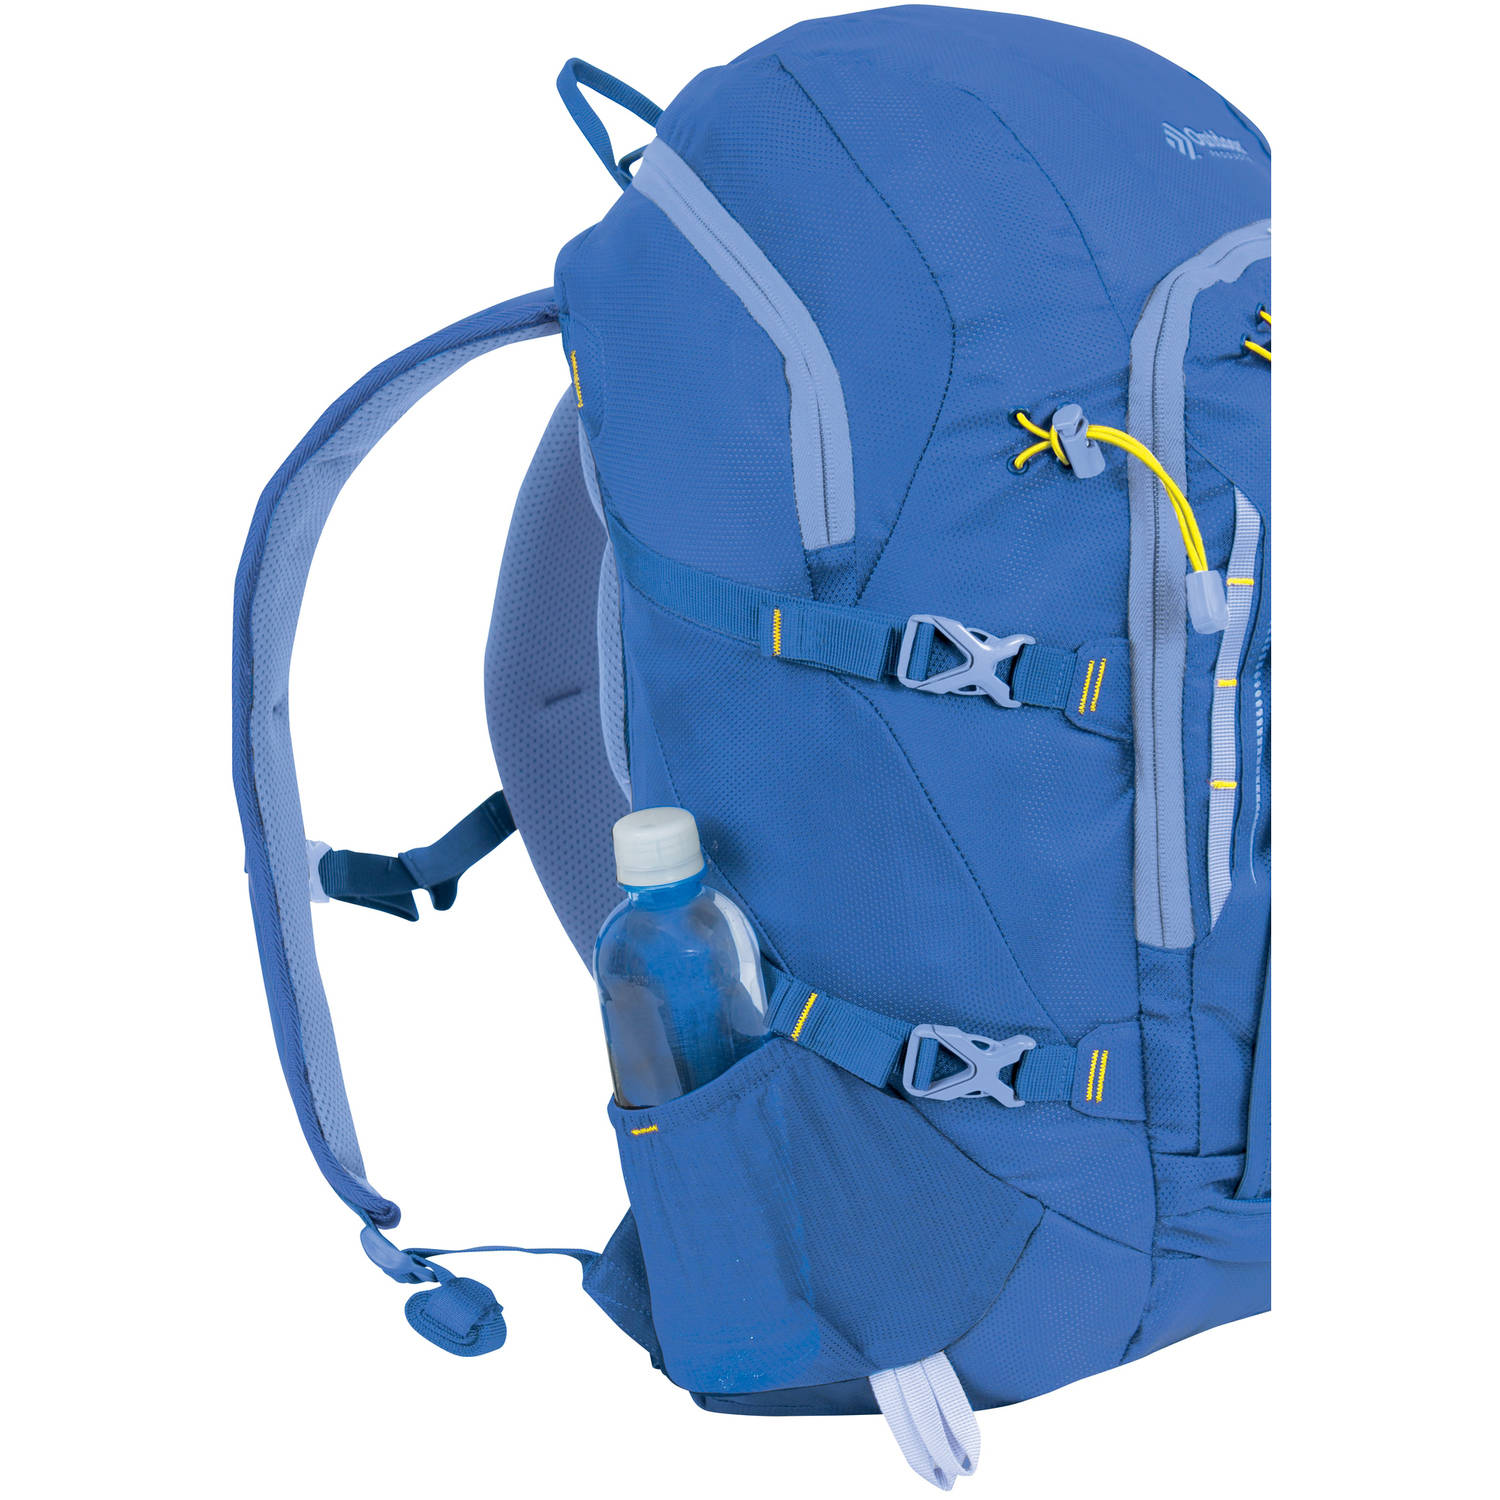 Details about Outdoor Products Equinox Internal Frame Backpack for Camping 22b27cb815984